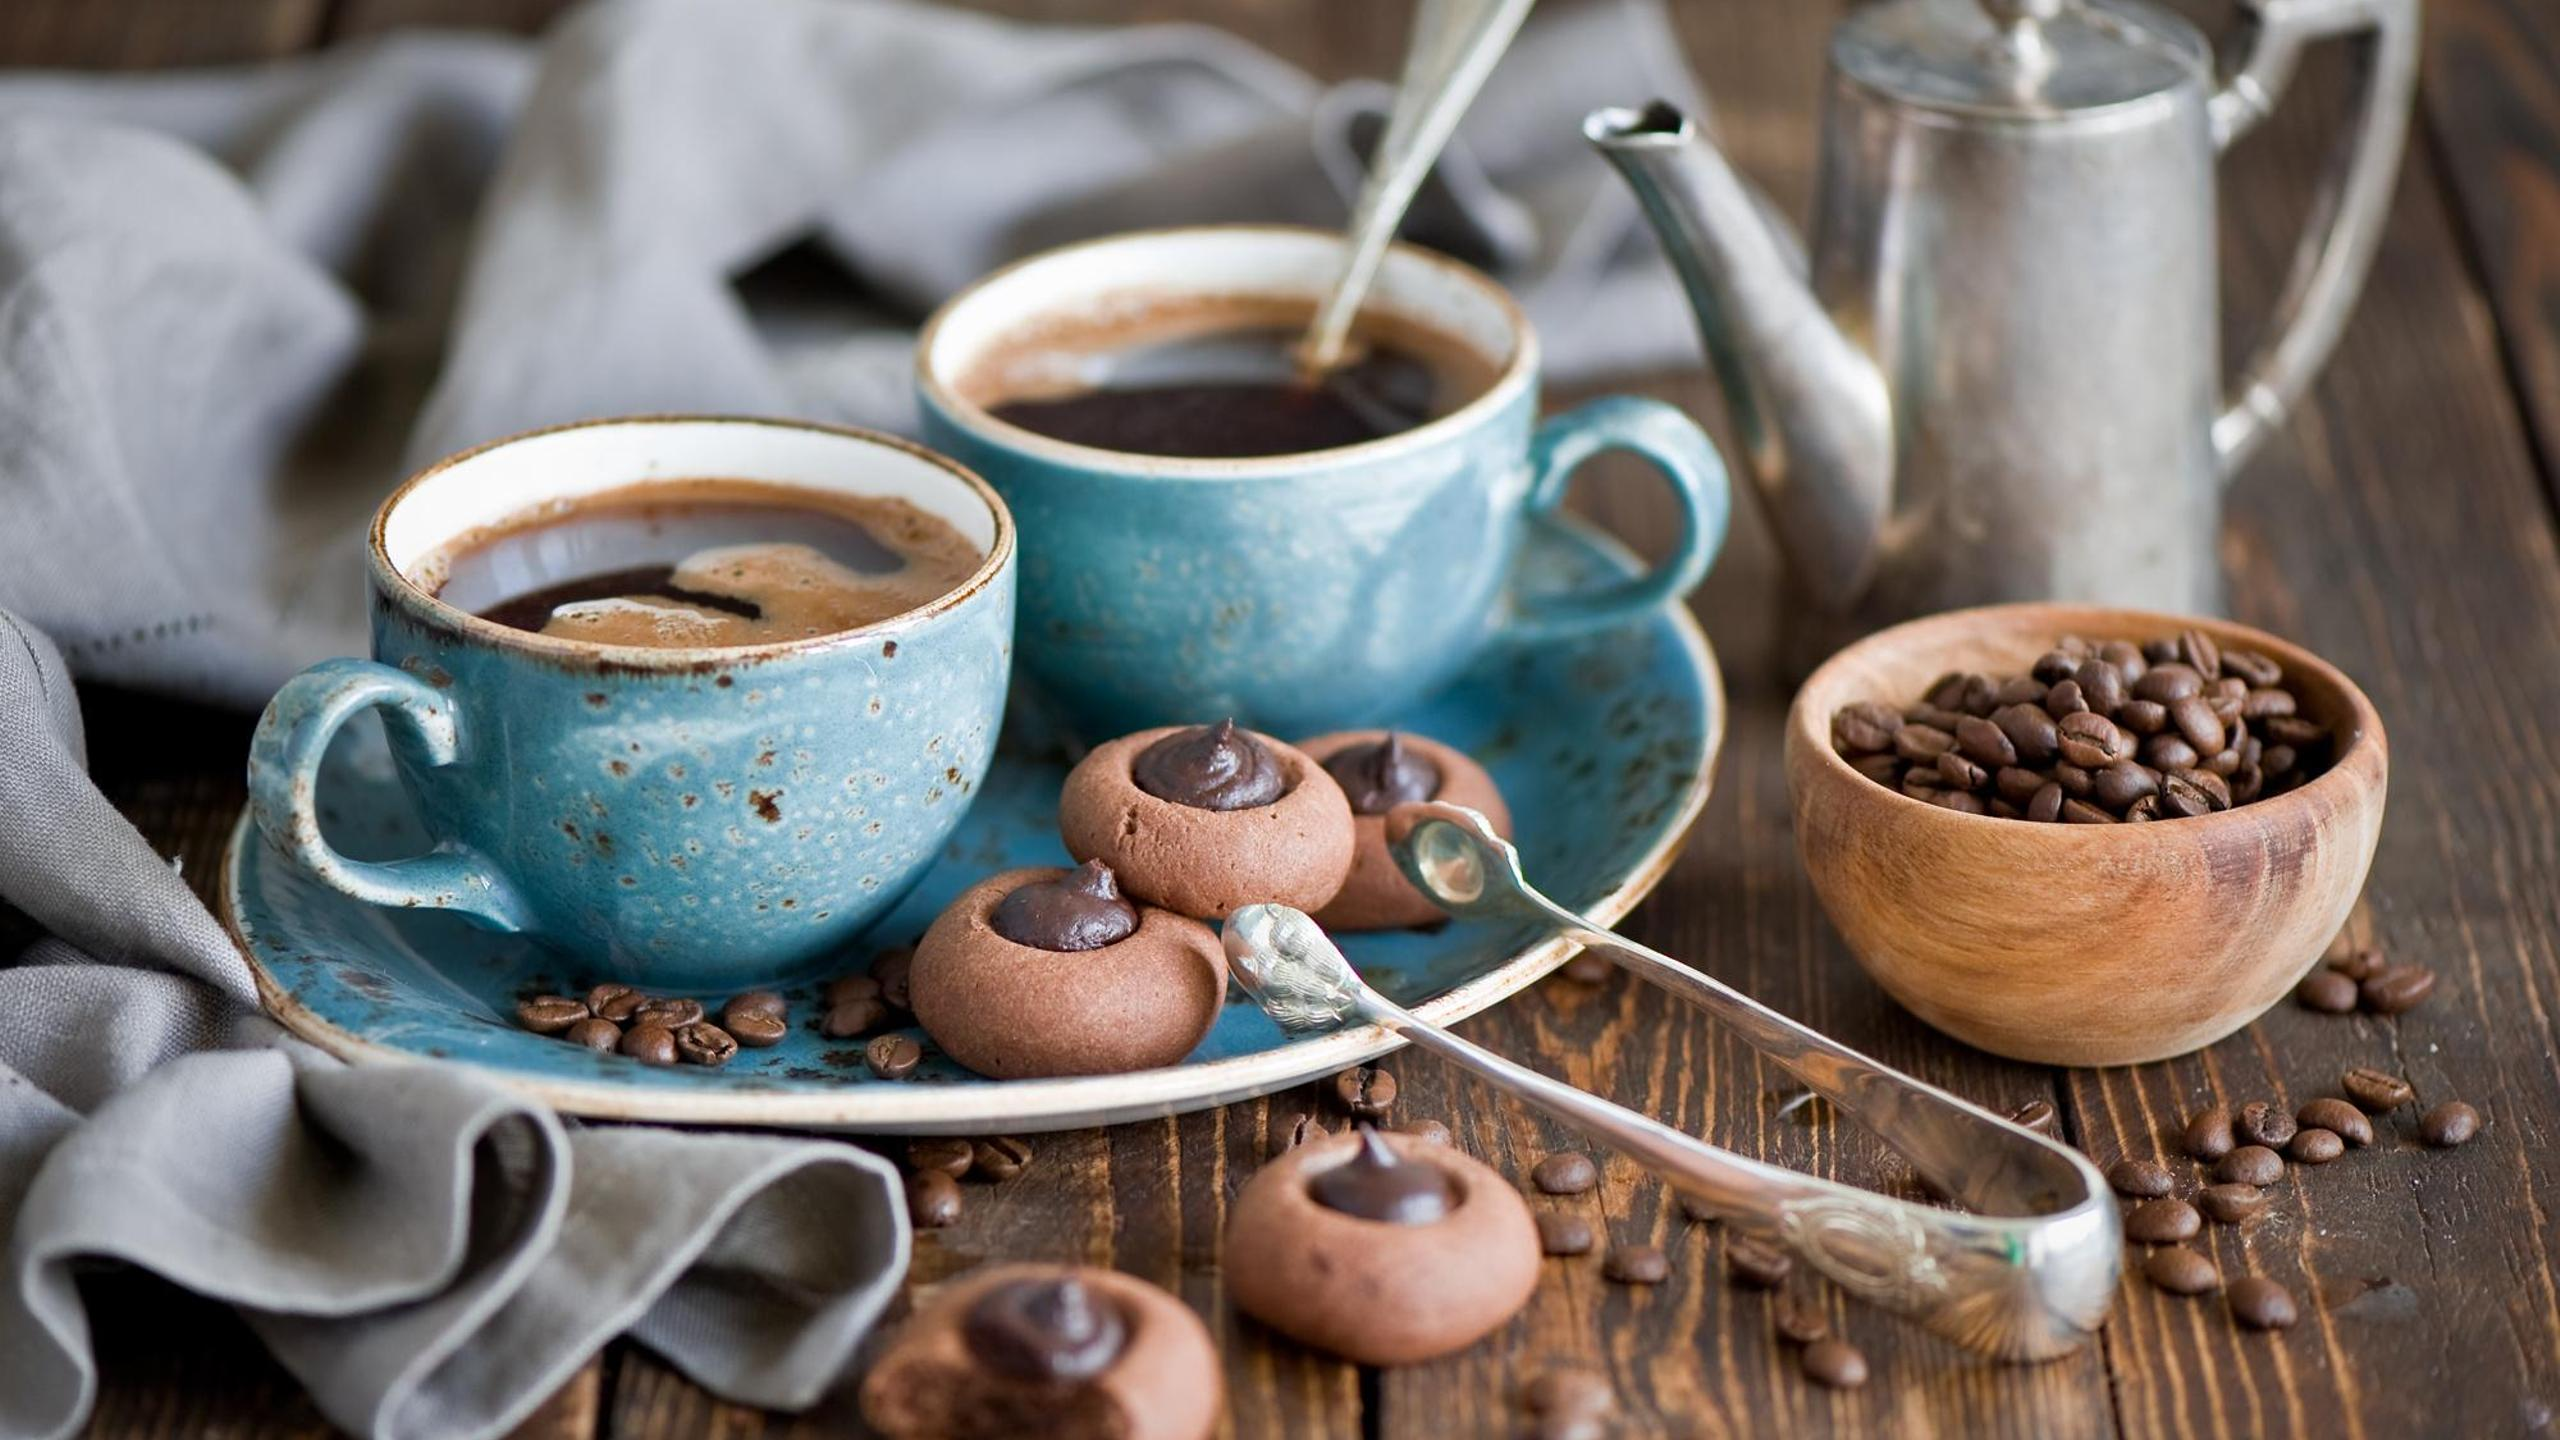 Chocolate cookies and delicious coffee in the morning Wallpaper ...